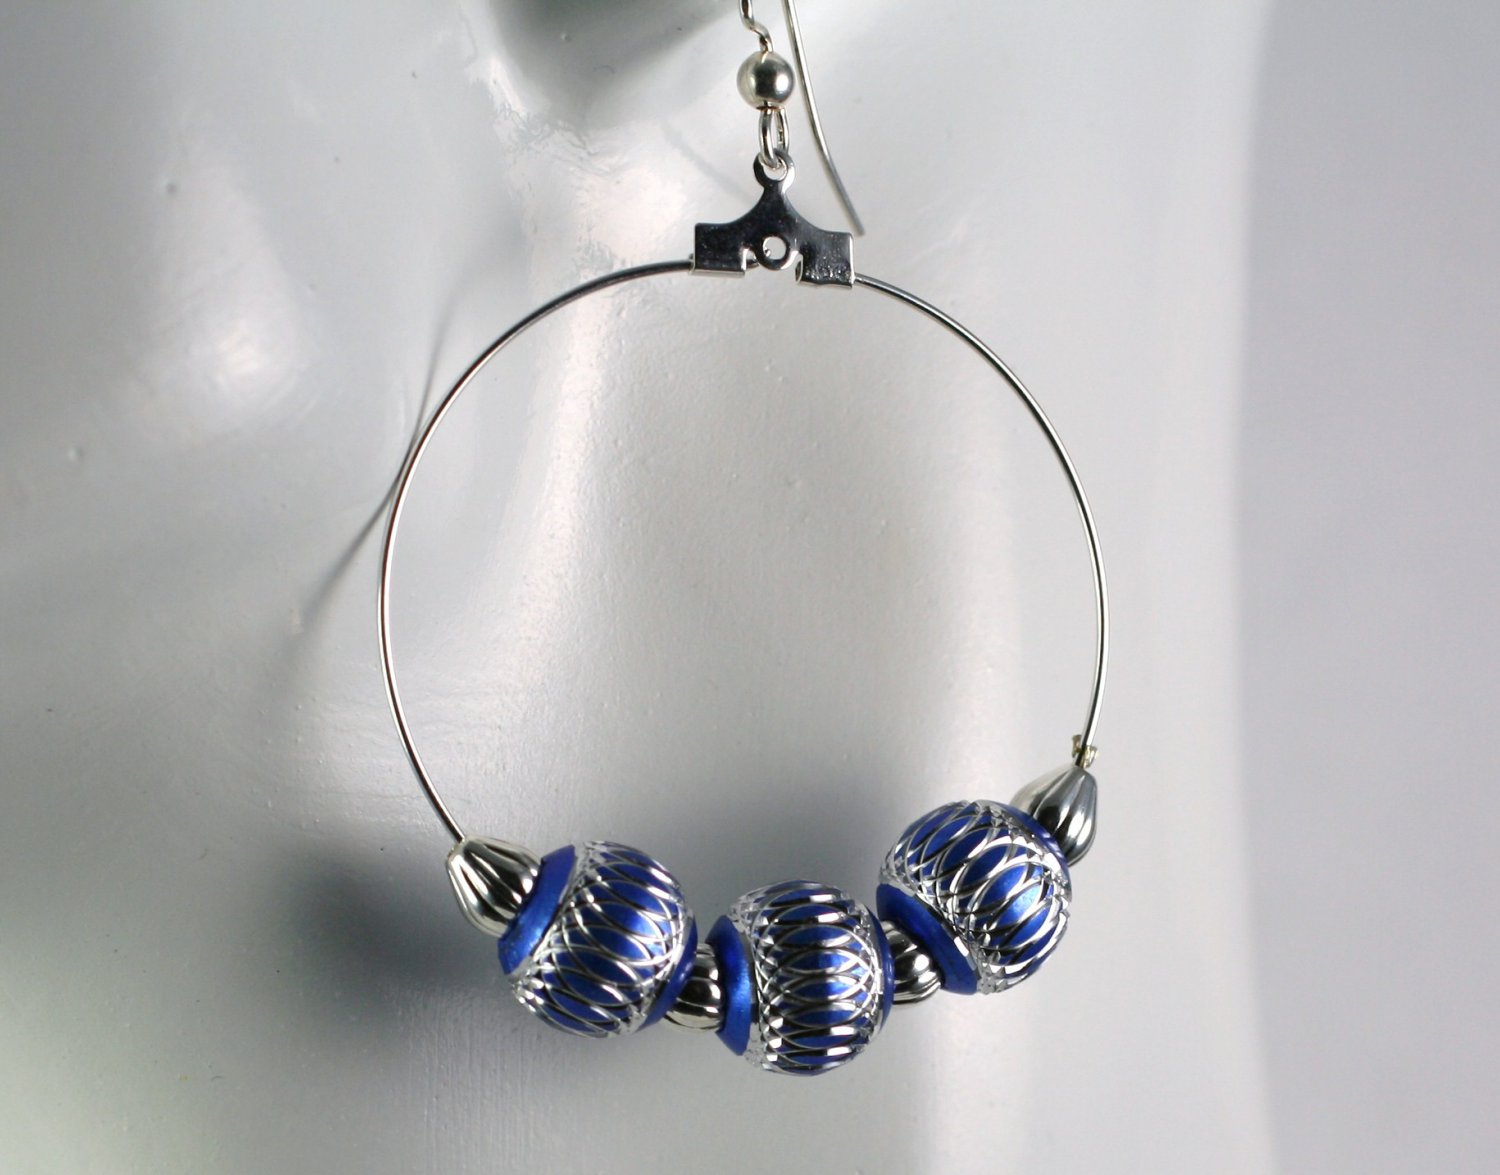 Silver Hoop Earrings with Silver and Blue Beads 1.5 in. Diameter  Handcrafted Jewelry